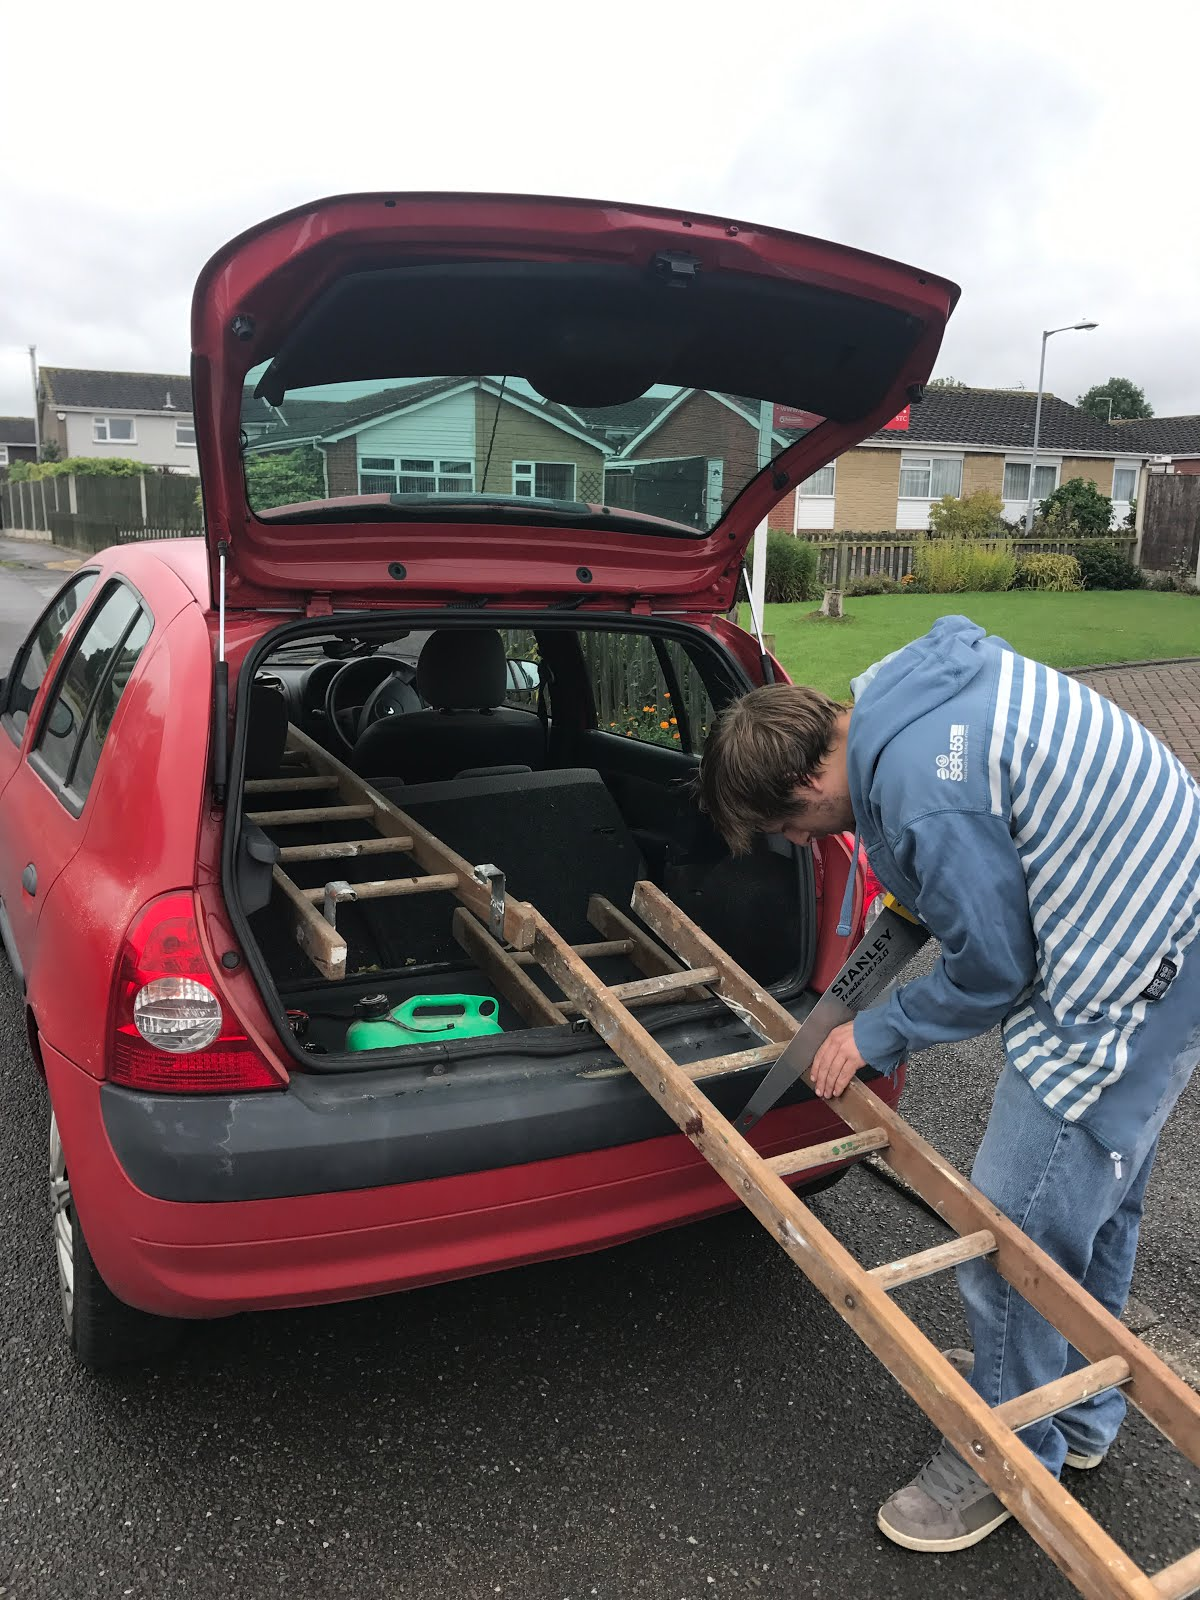 How to fit ladders into a car